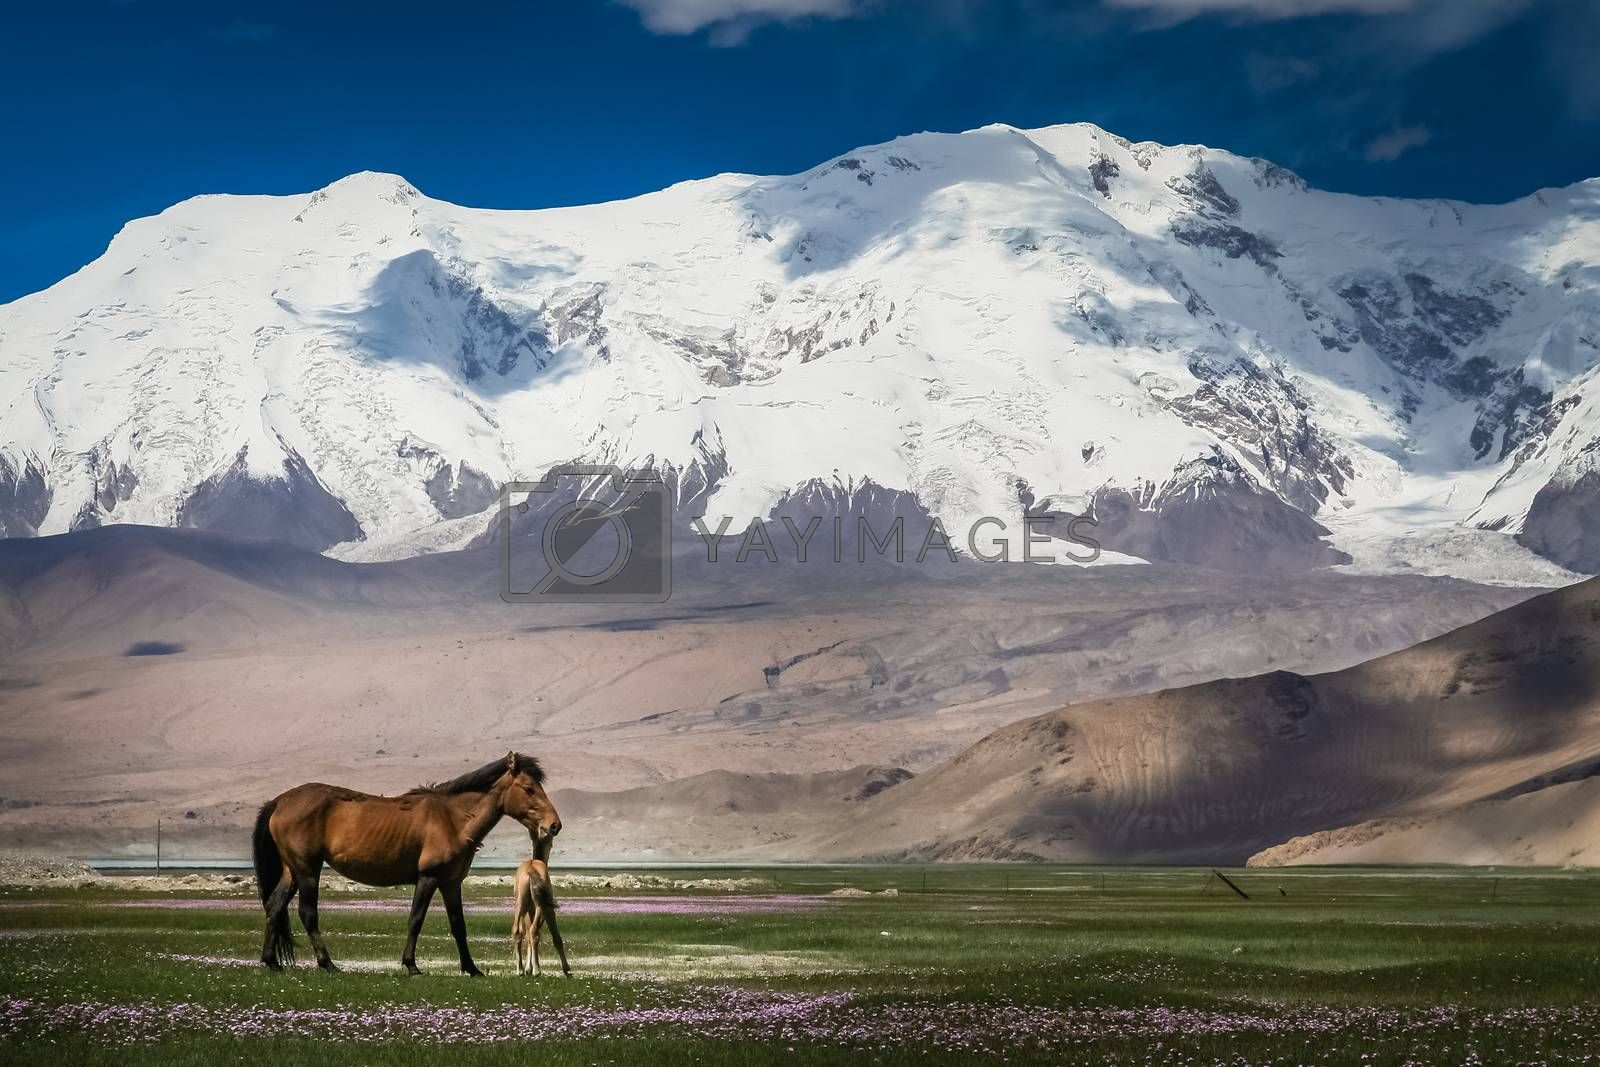 Mare and colt on a meadow in front of a snowcapped mountains in Karakorum, China